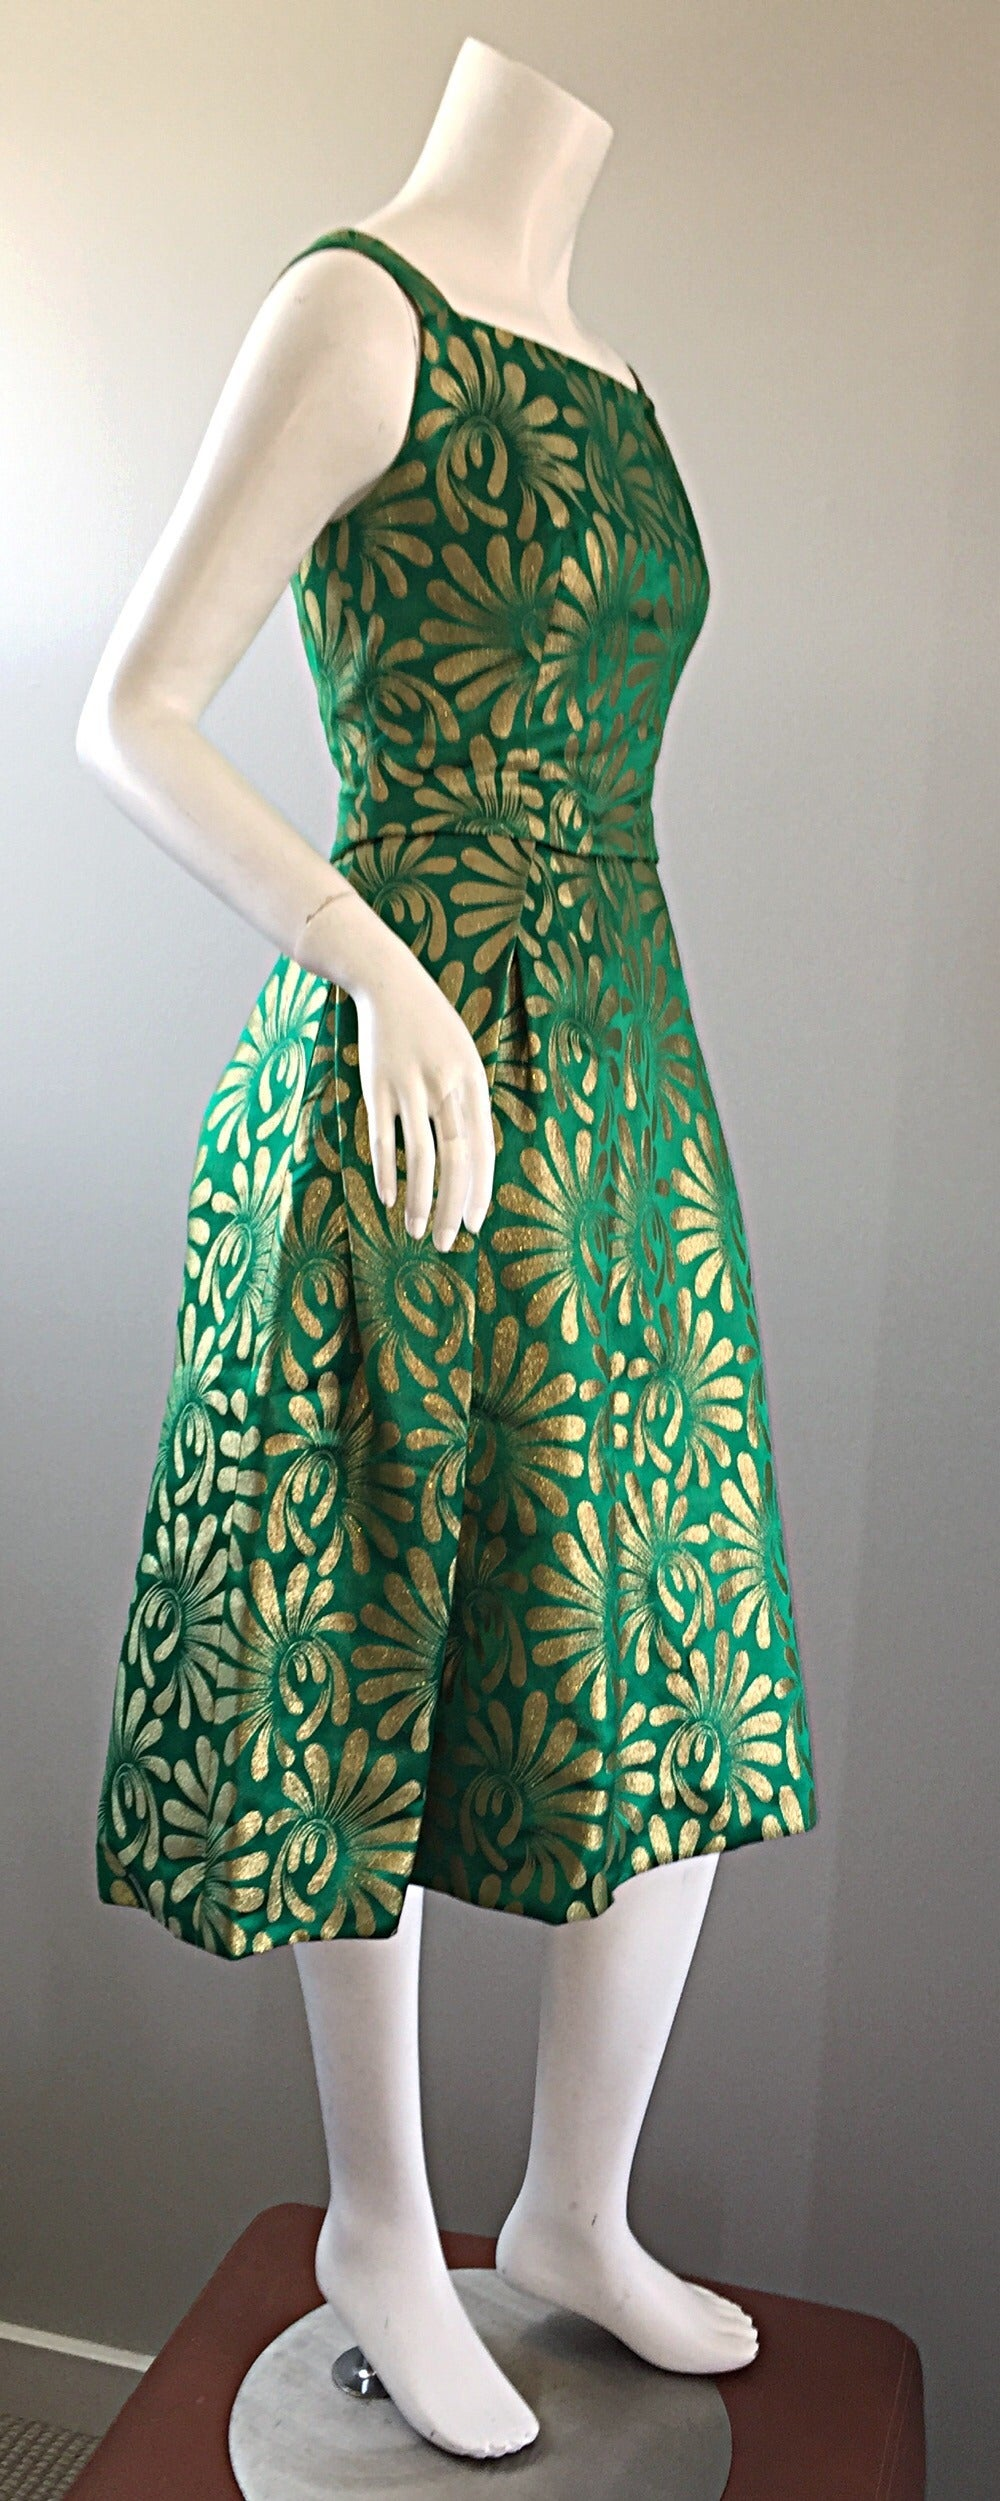 1950s 50s Vintage Blauner for Bonwit Teller Green + Gold ' New Look ' Silk Dress 6